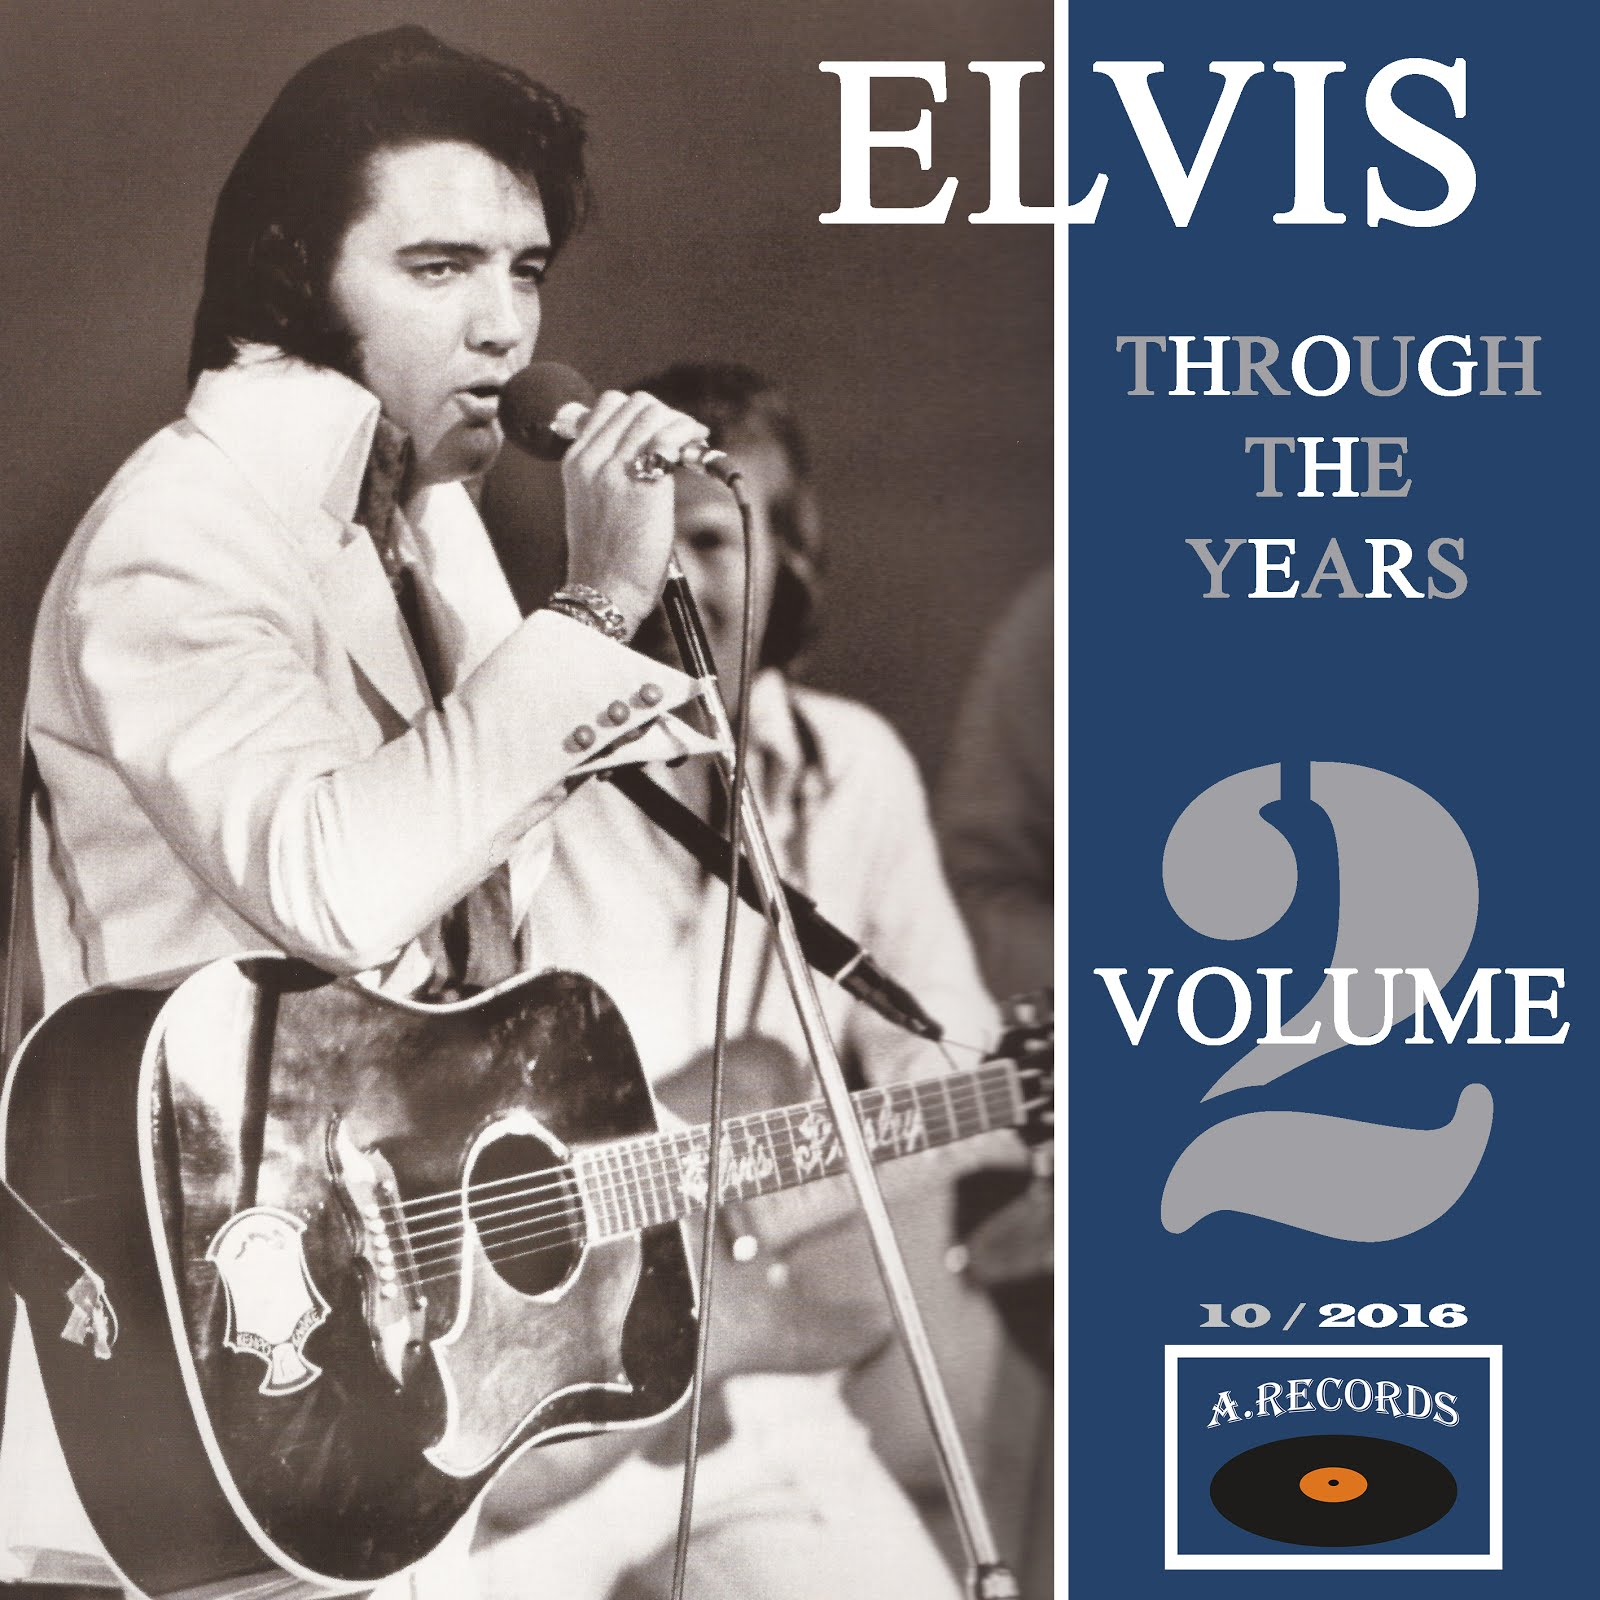 ELVIS THROUGH THE YEARS - VOLUME 2 (OCTOBER 2016)